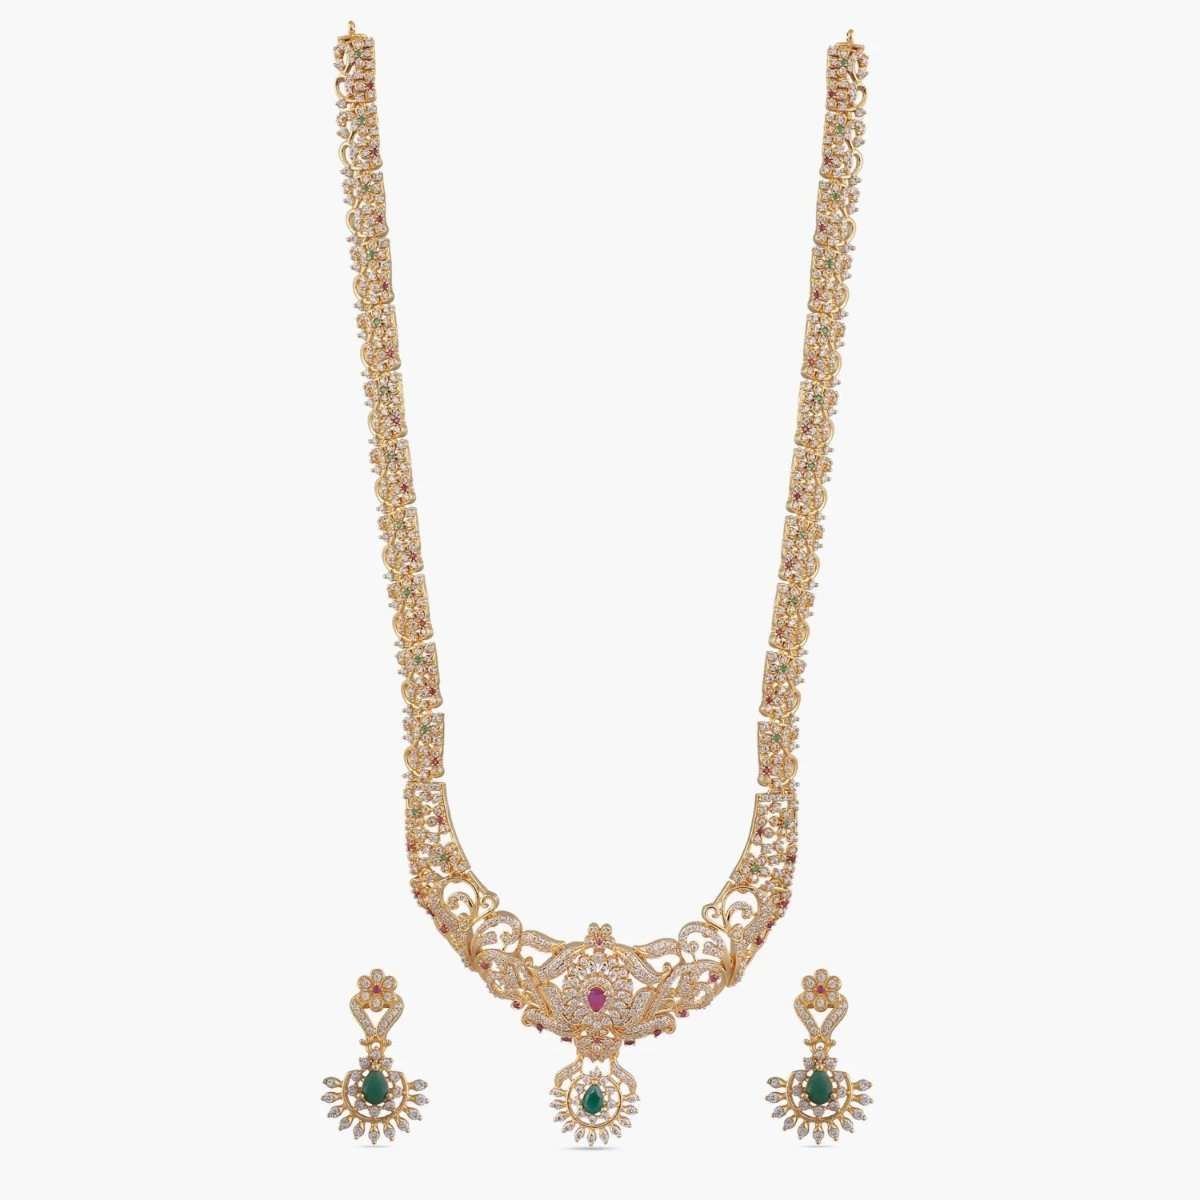 Deval Nakshatra CZ Long Necklace Set